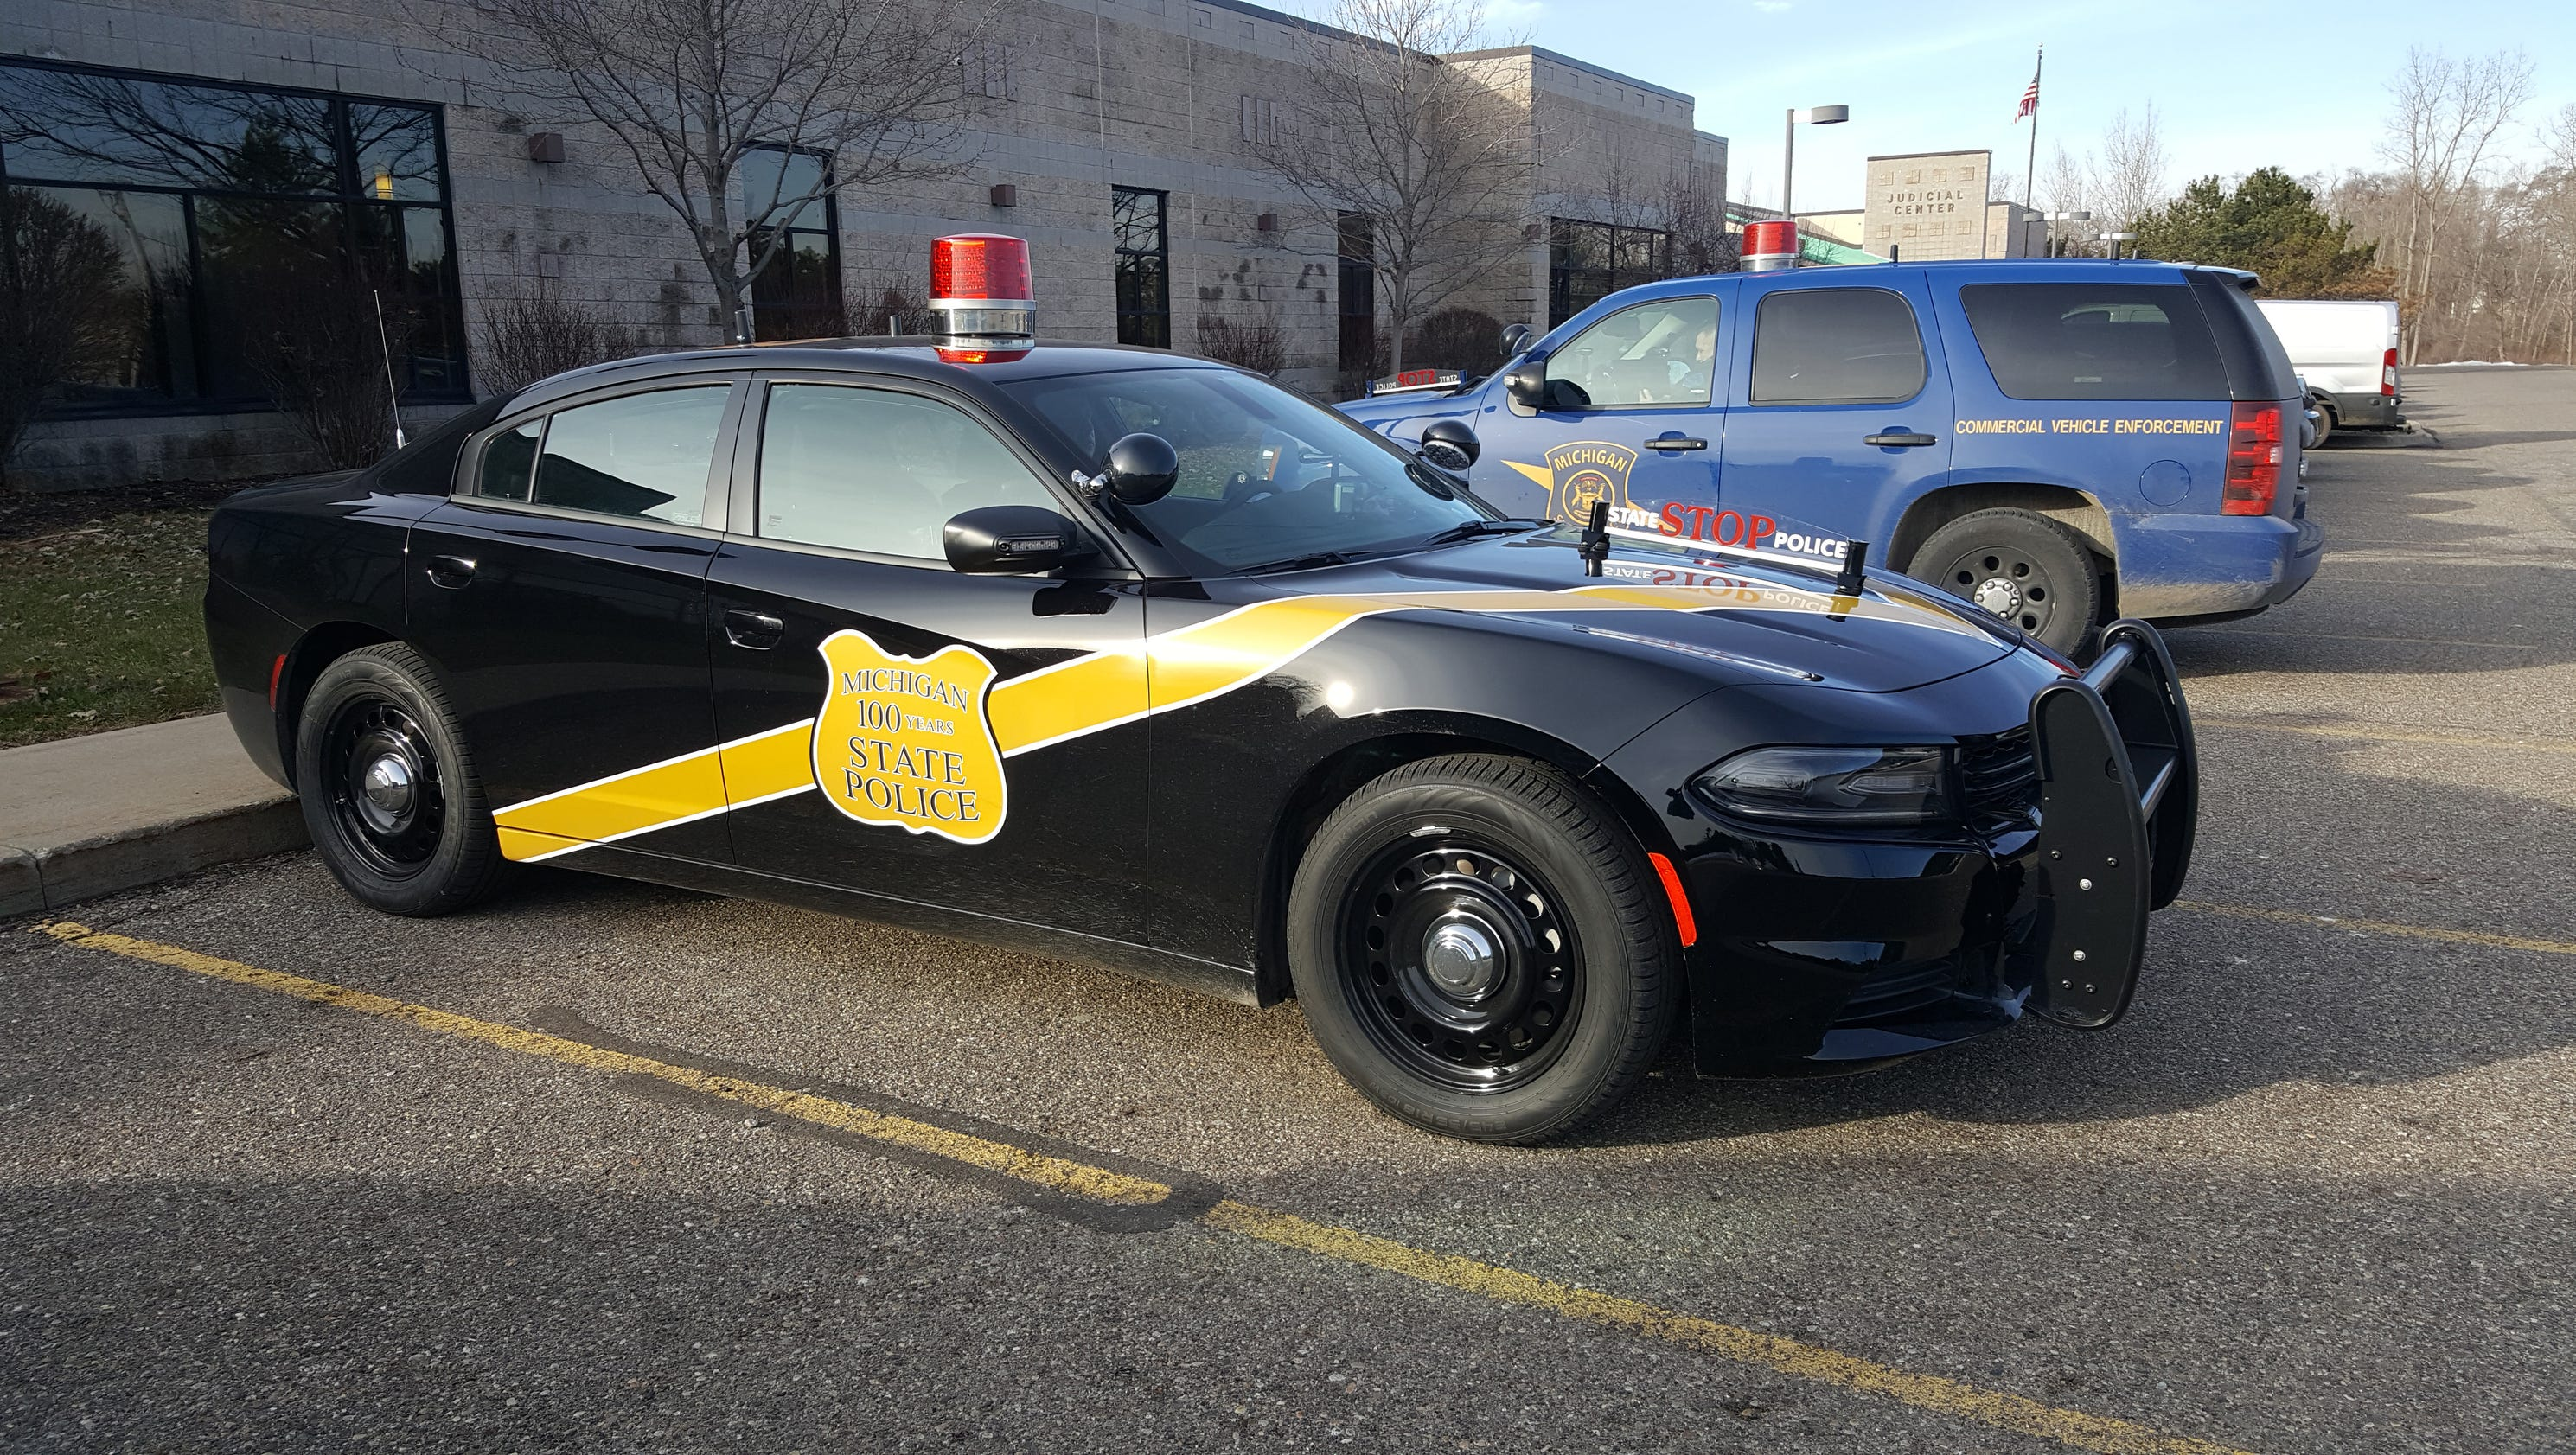 New Michigan State Police Dodge Charger is a head-turner